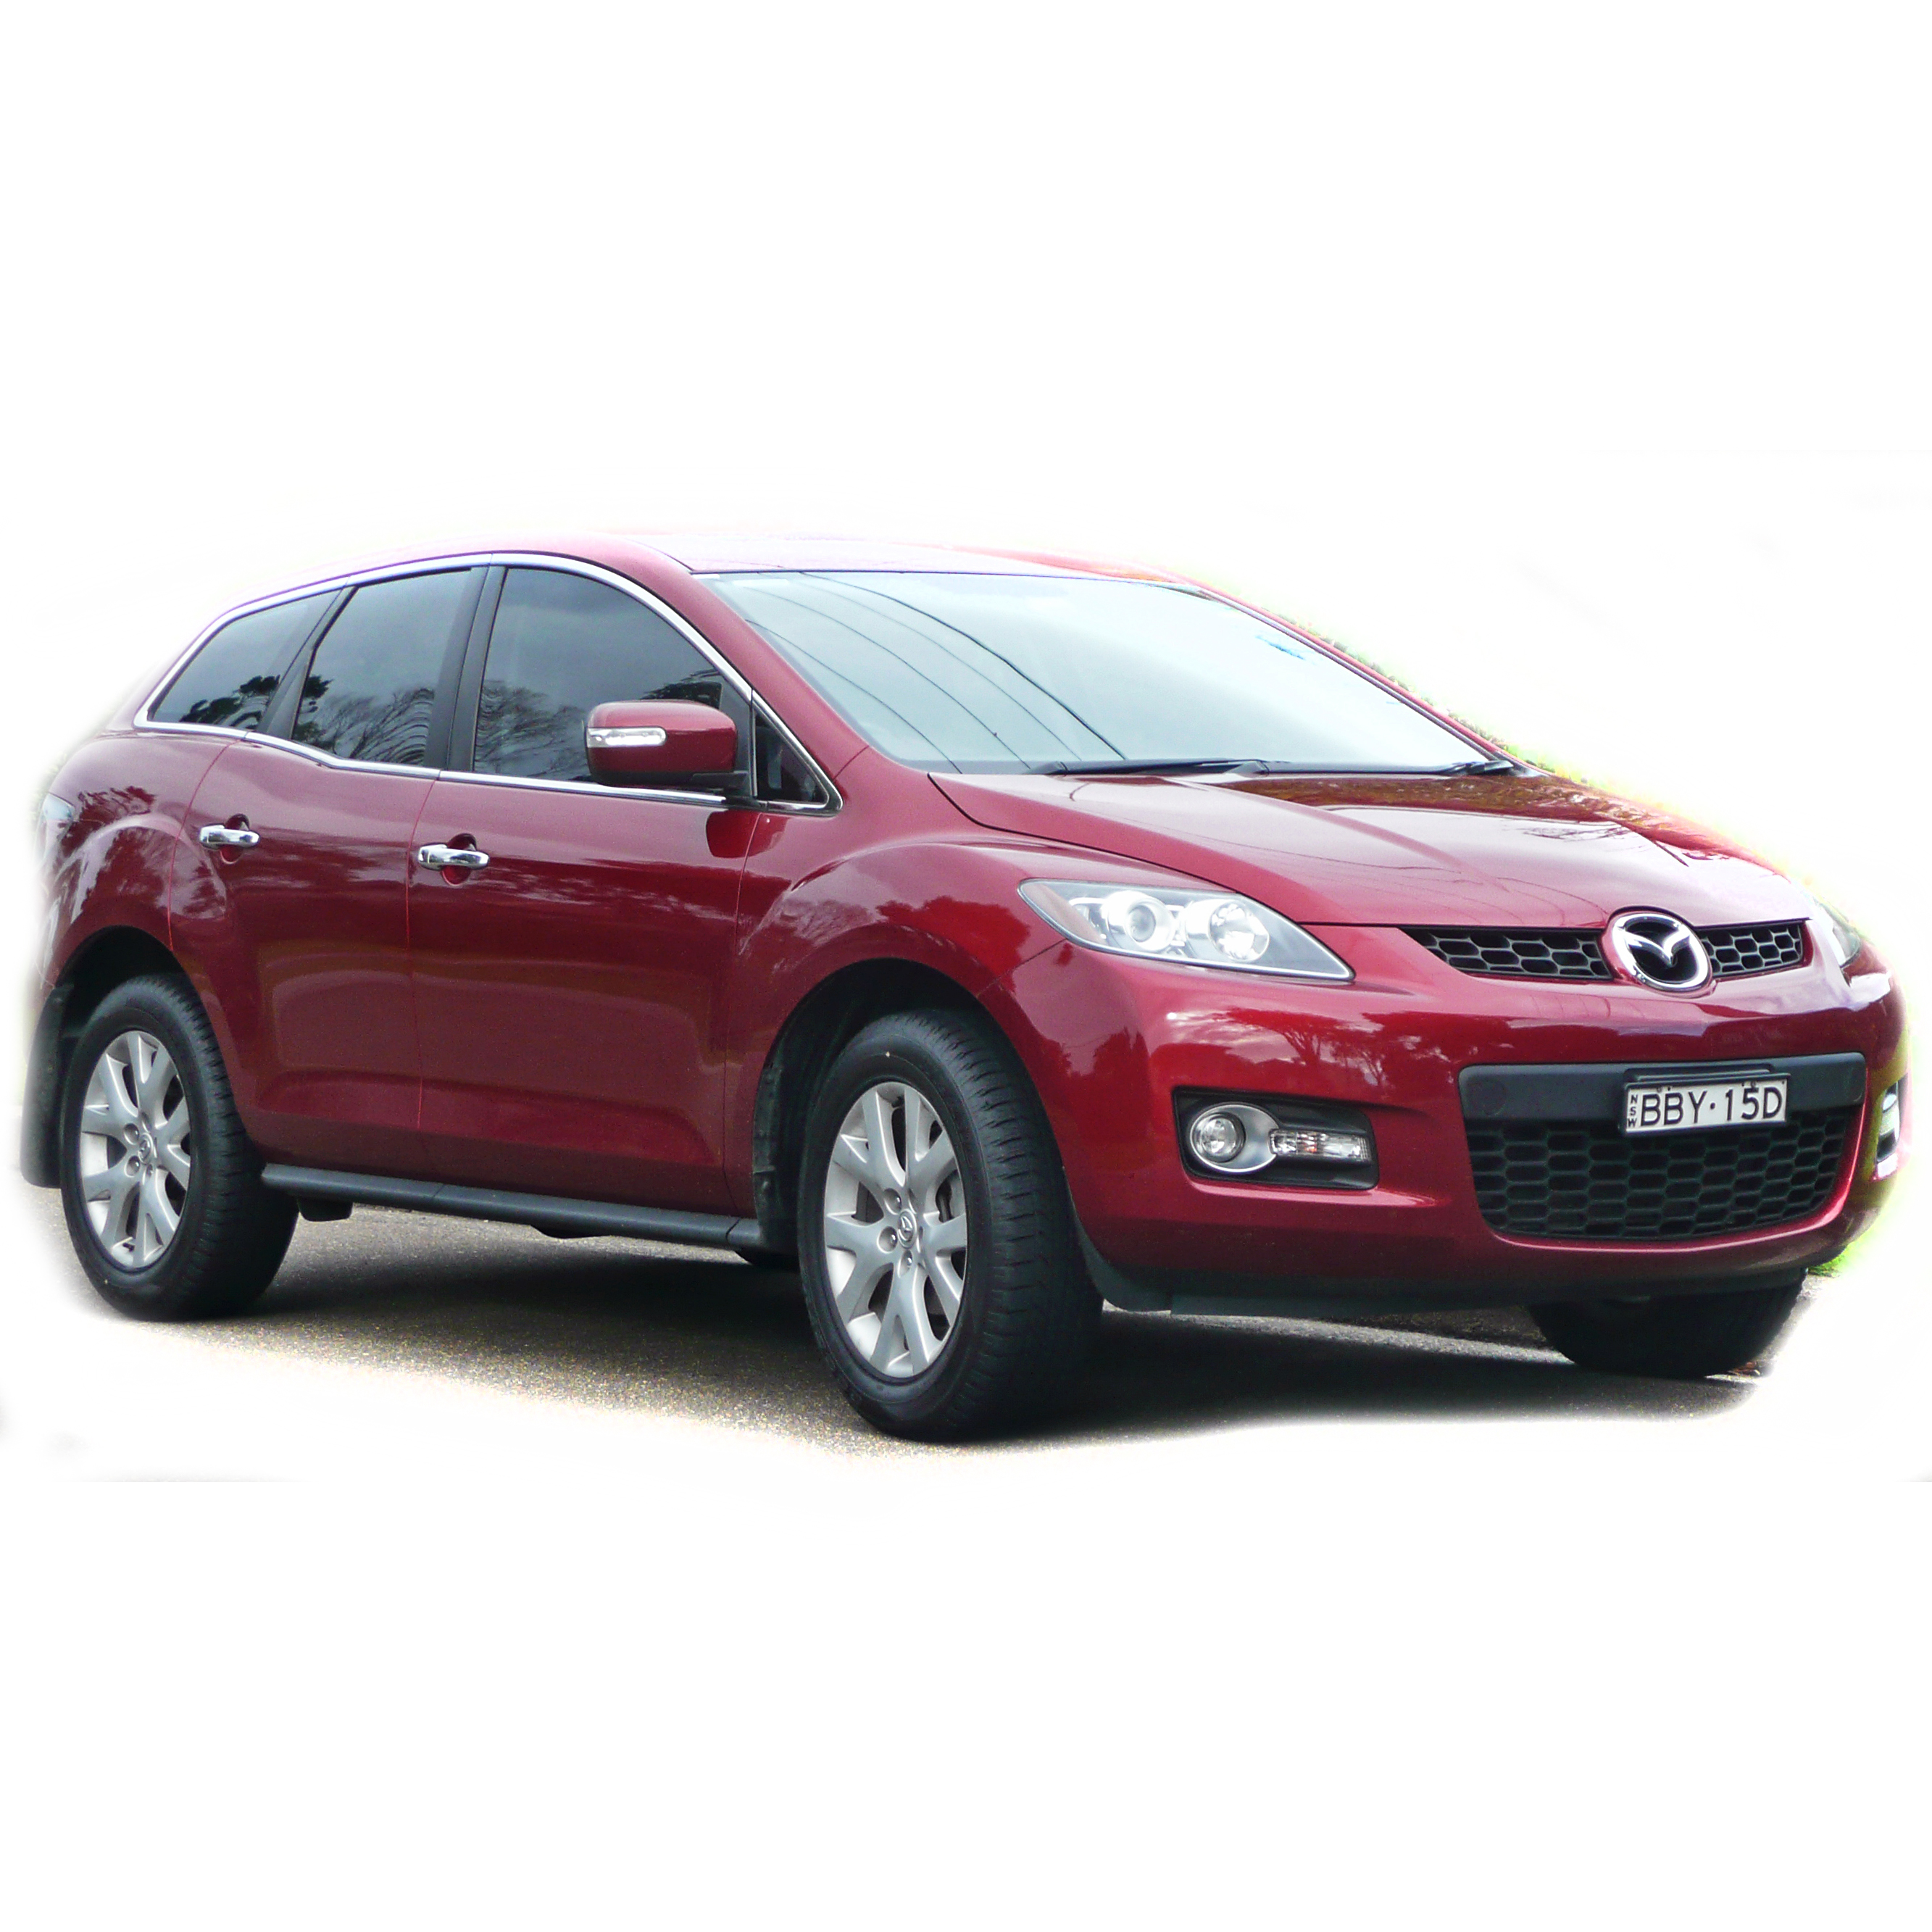 Mazda CX-7 2009 Onwards